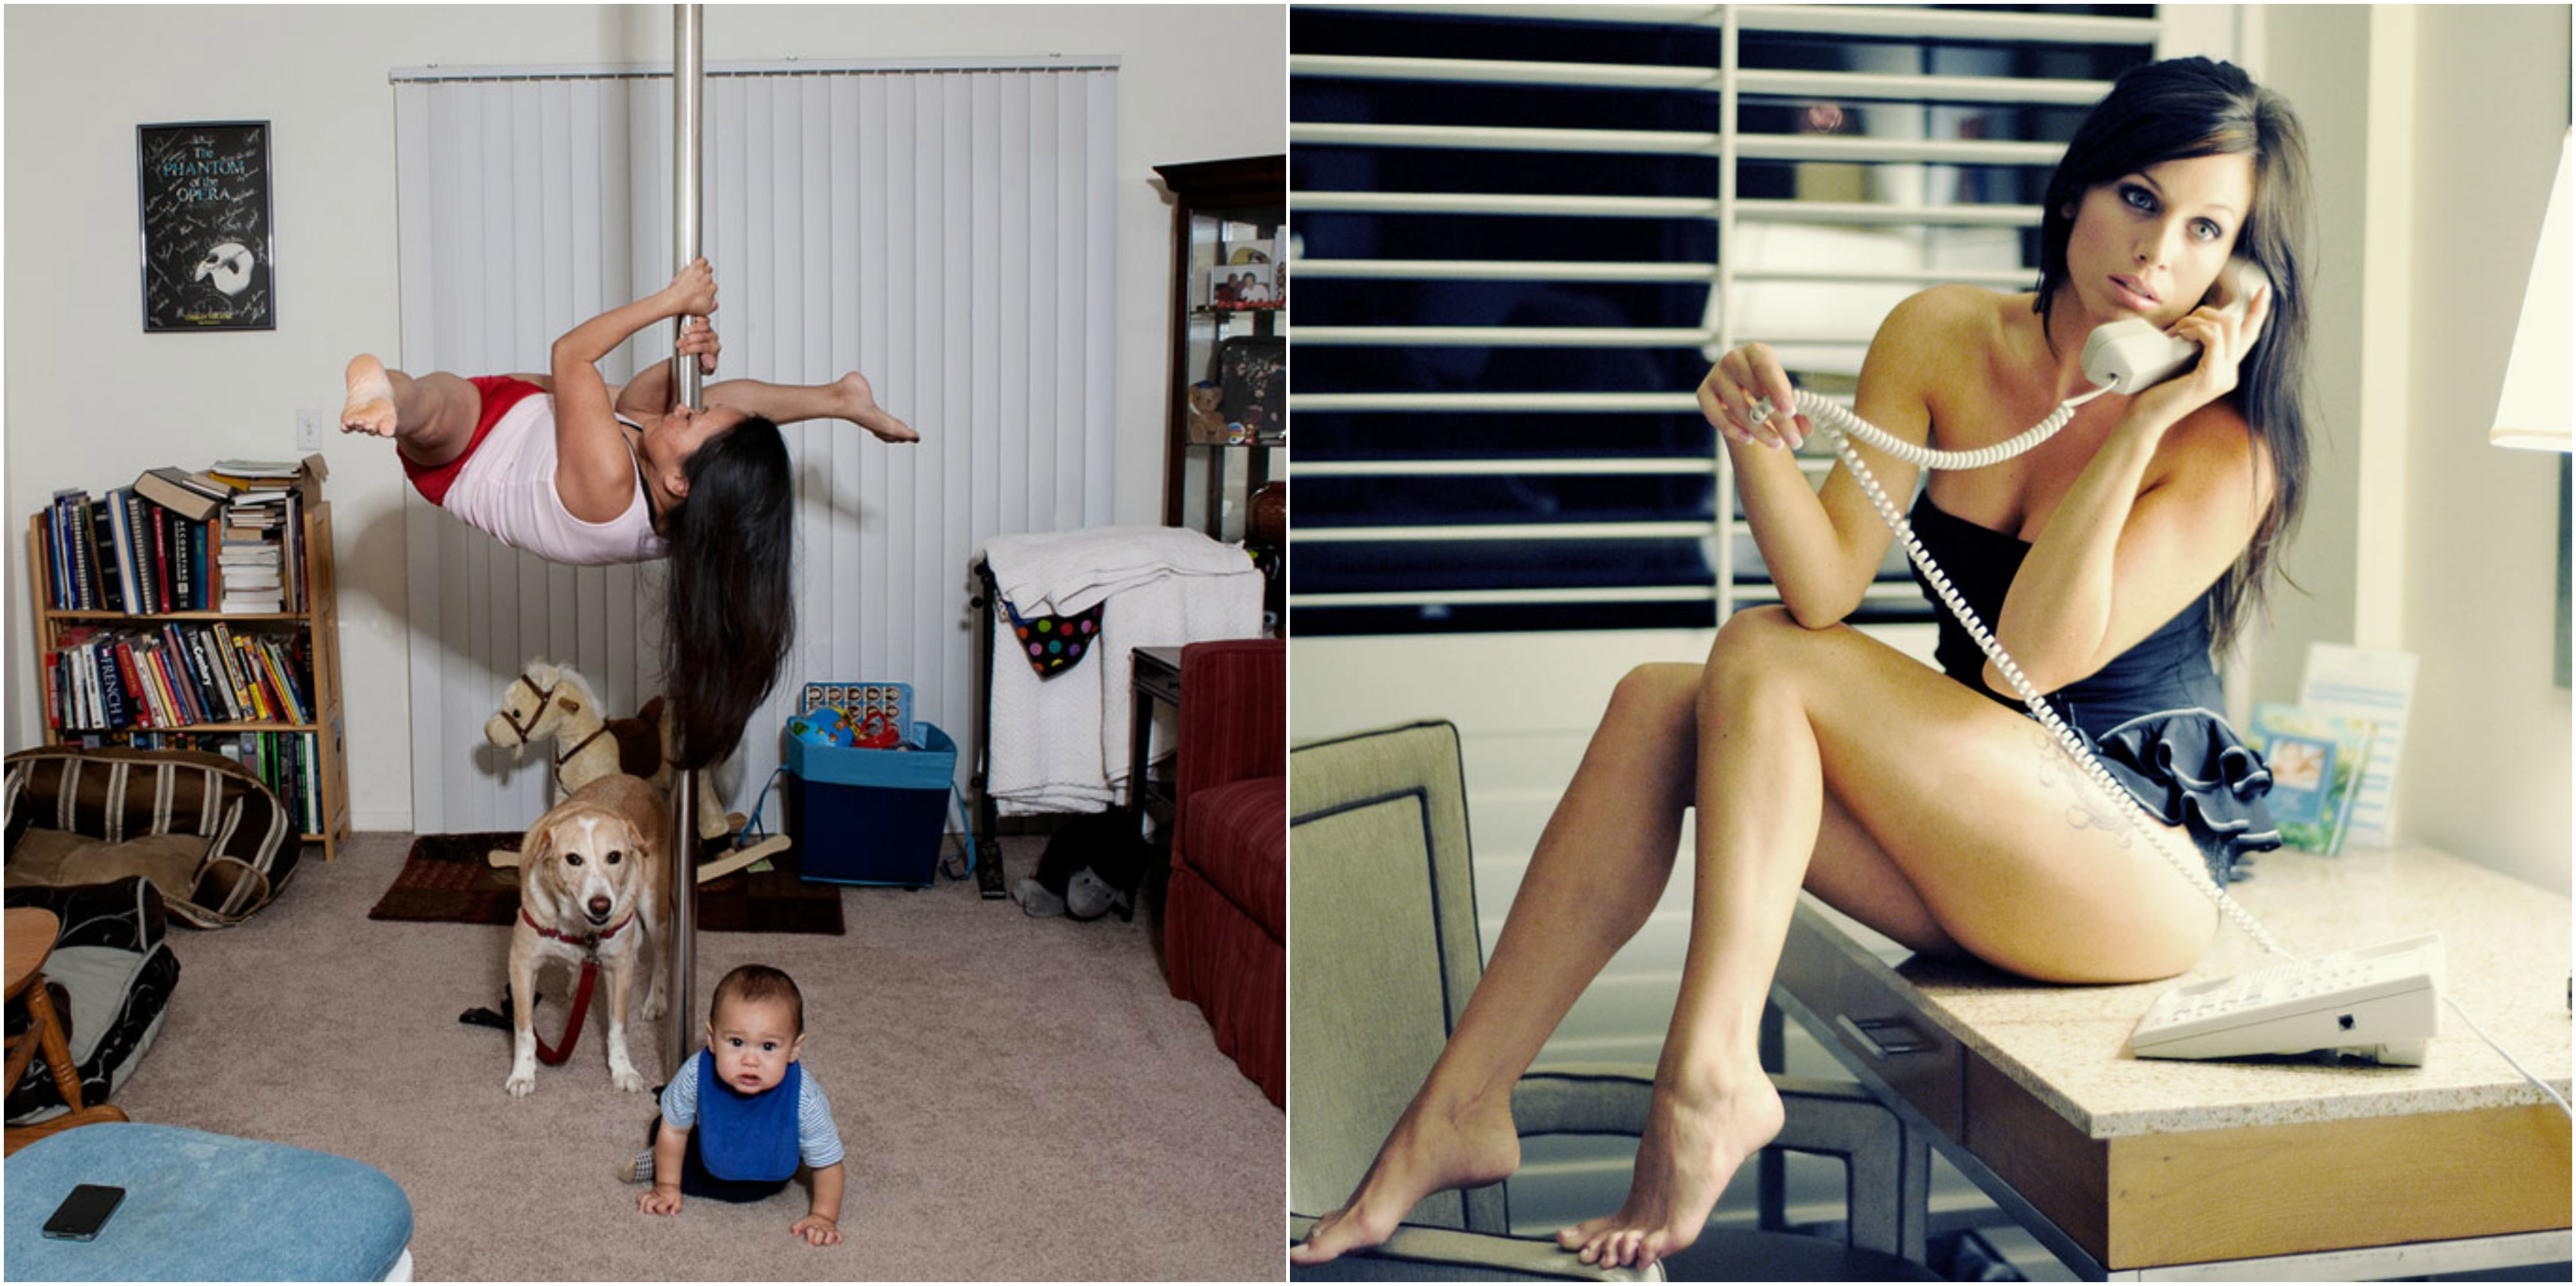 Bizarre and Freaky Things Women Do When Alone